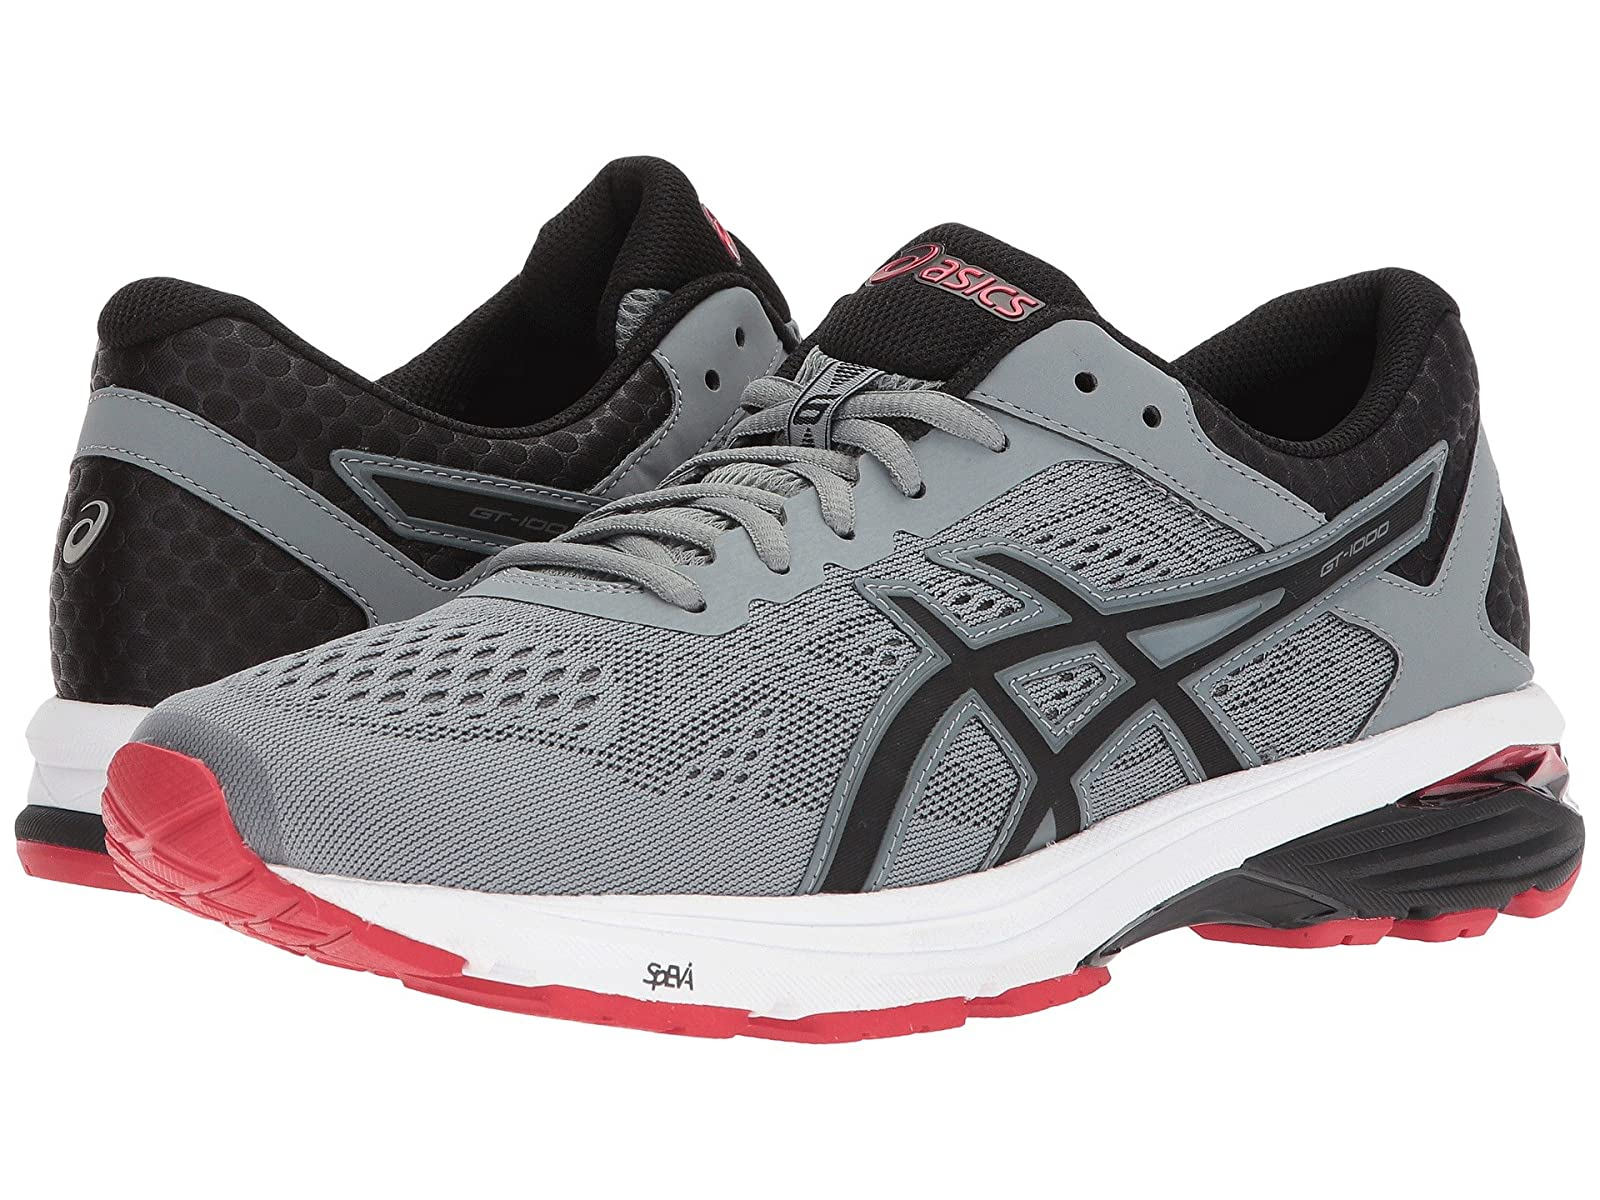 ASICS GT-1000 6Atmospheric grades have affordable shoes